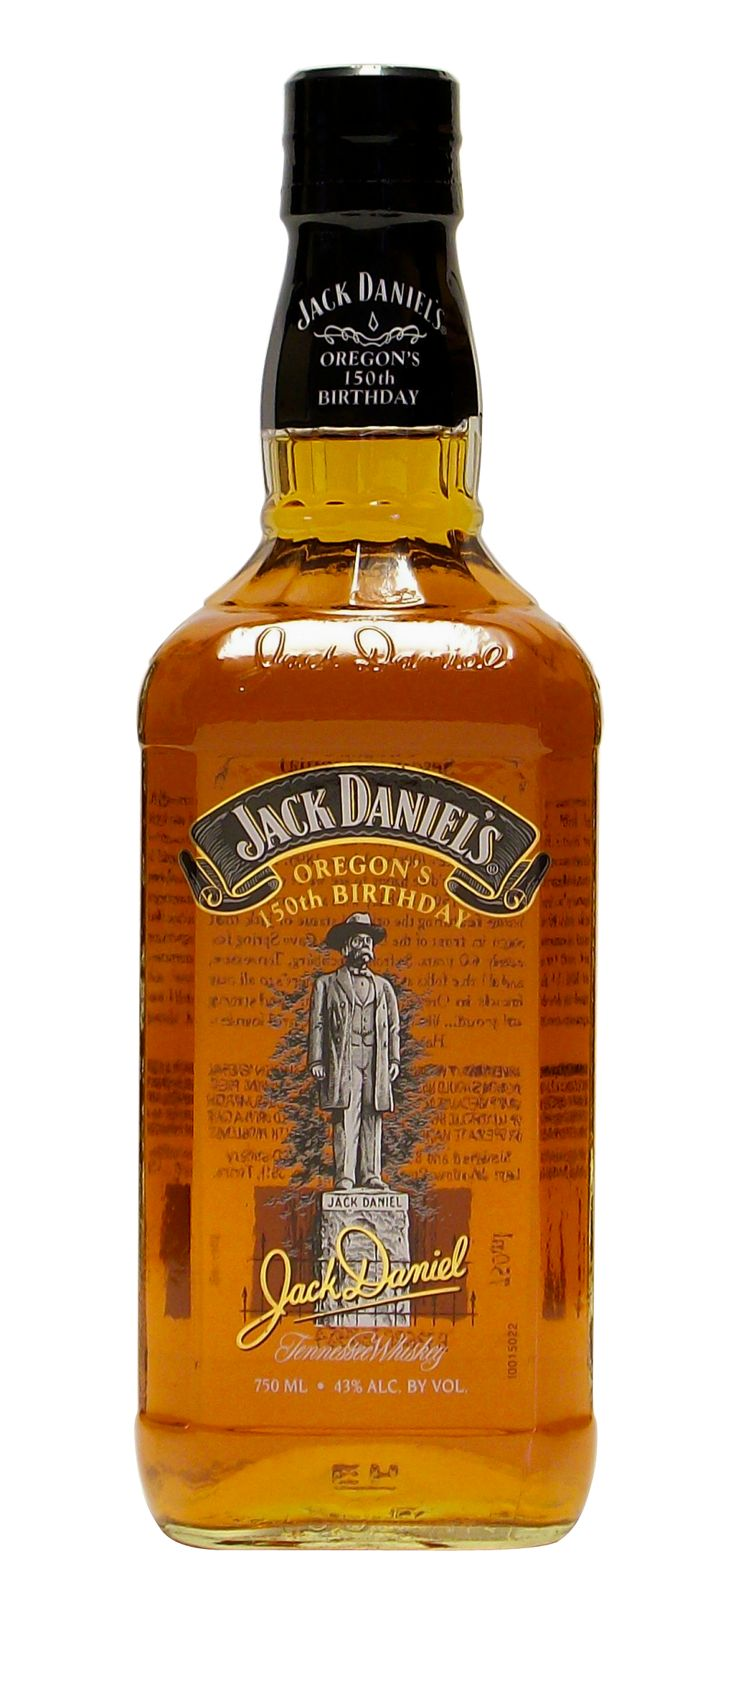 This beautiful 750ml bottle features an image of the Jack Daniel statue found near the cave spring on the Distillery grounds